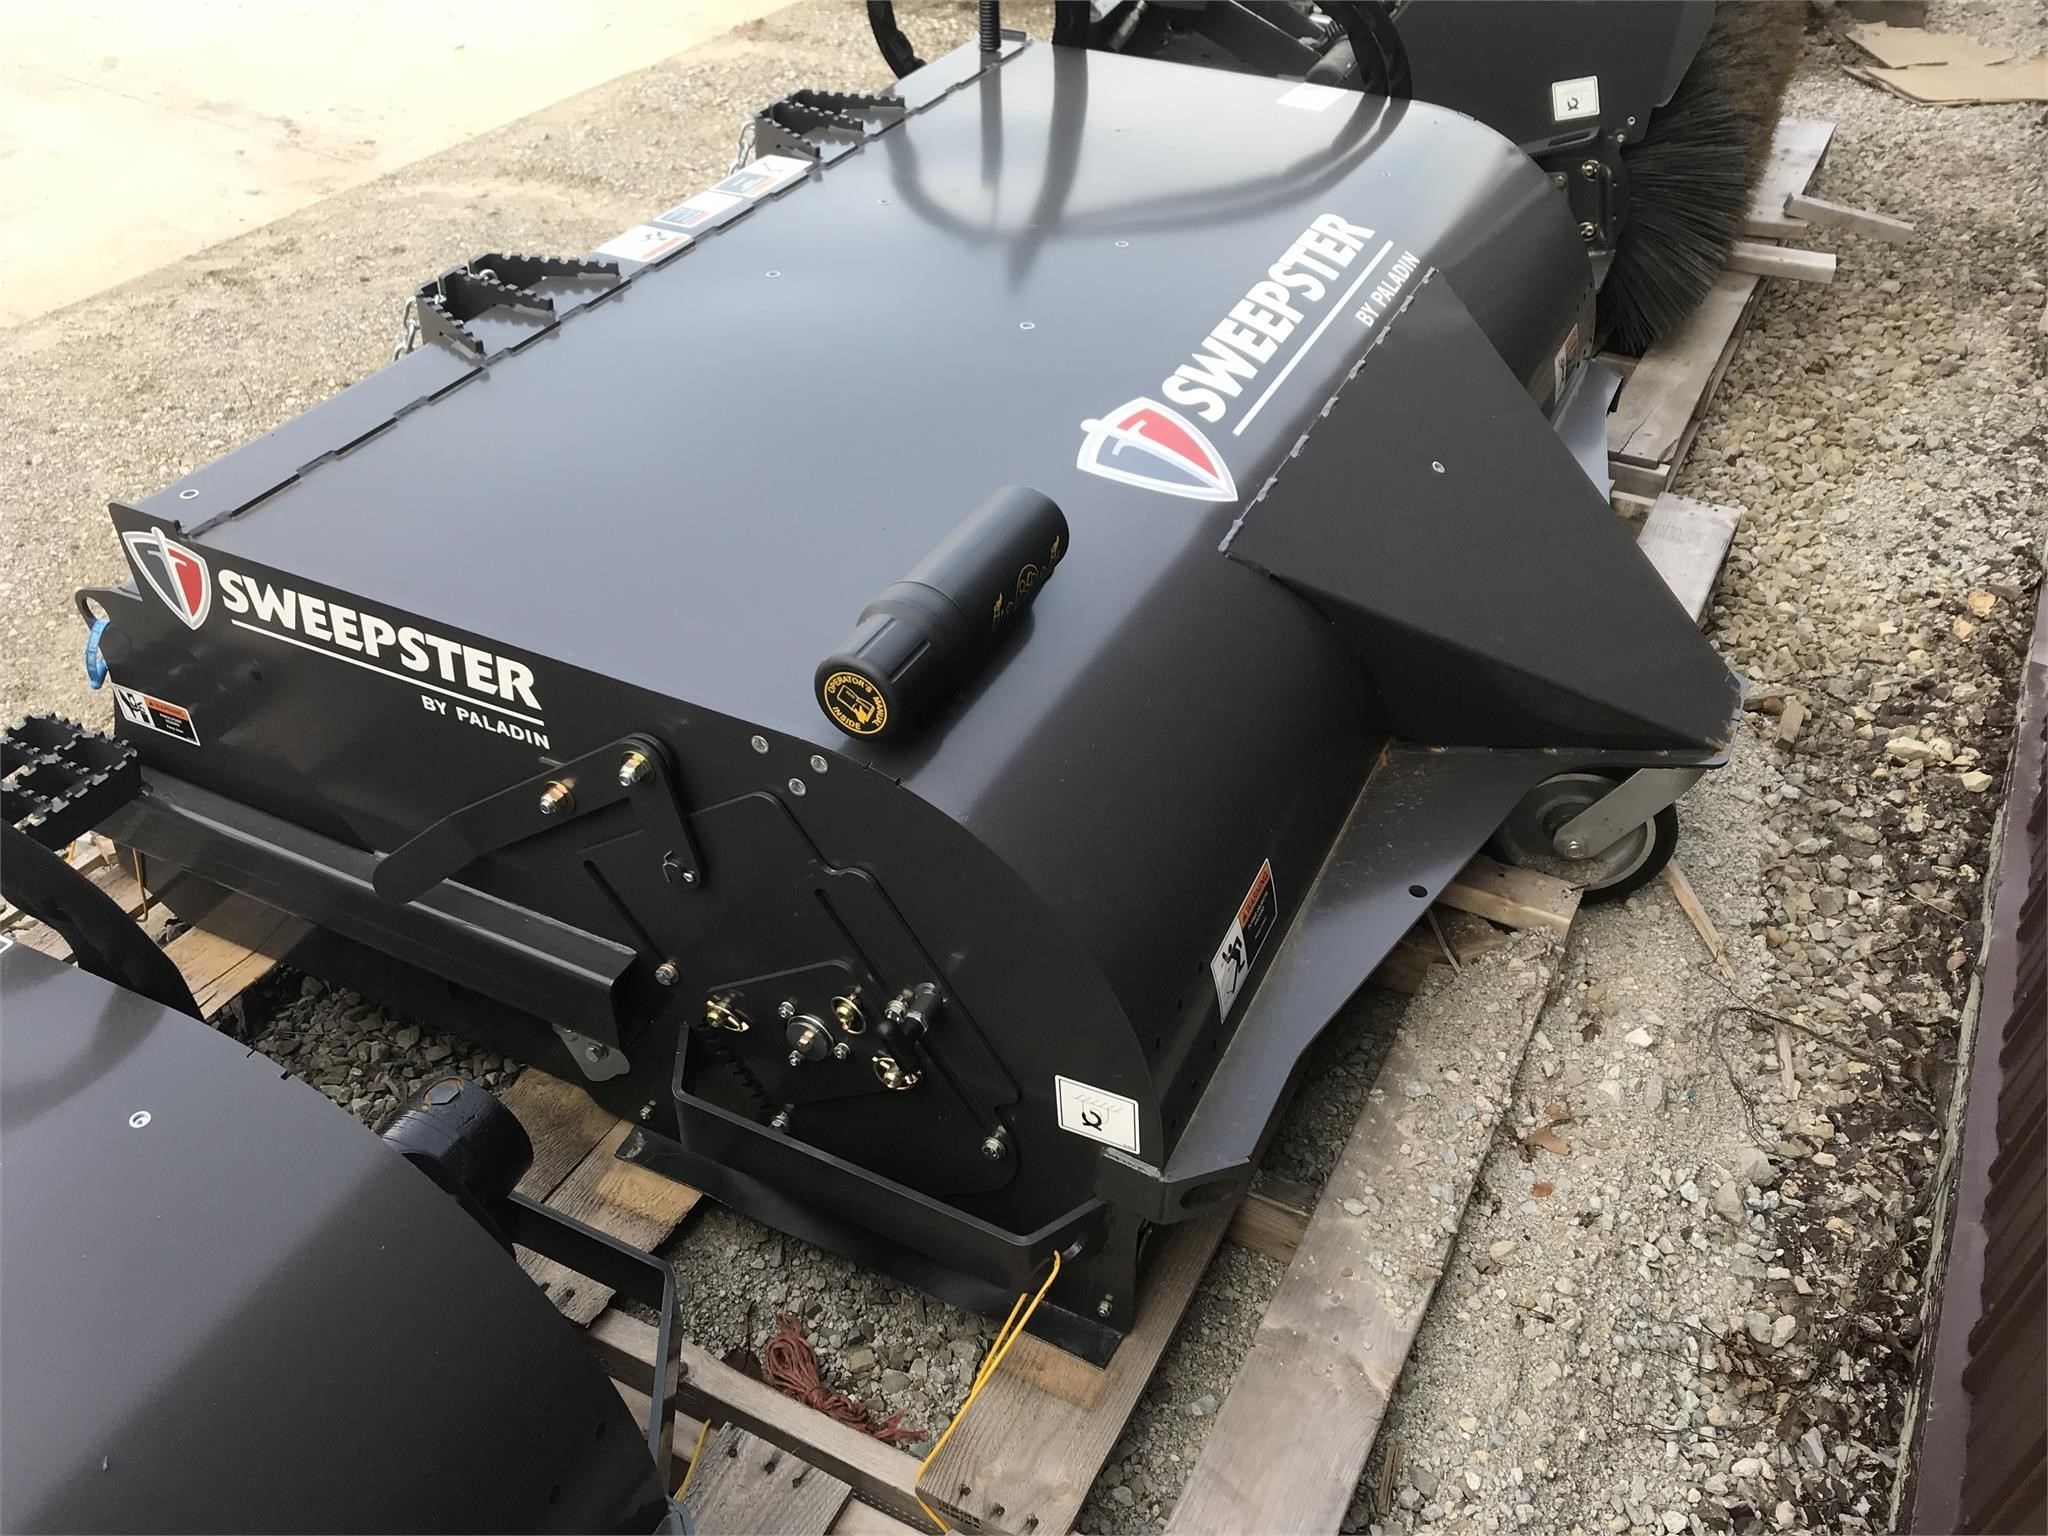 2019 Sweepster VRS6 Harvesting Attachment